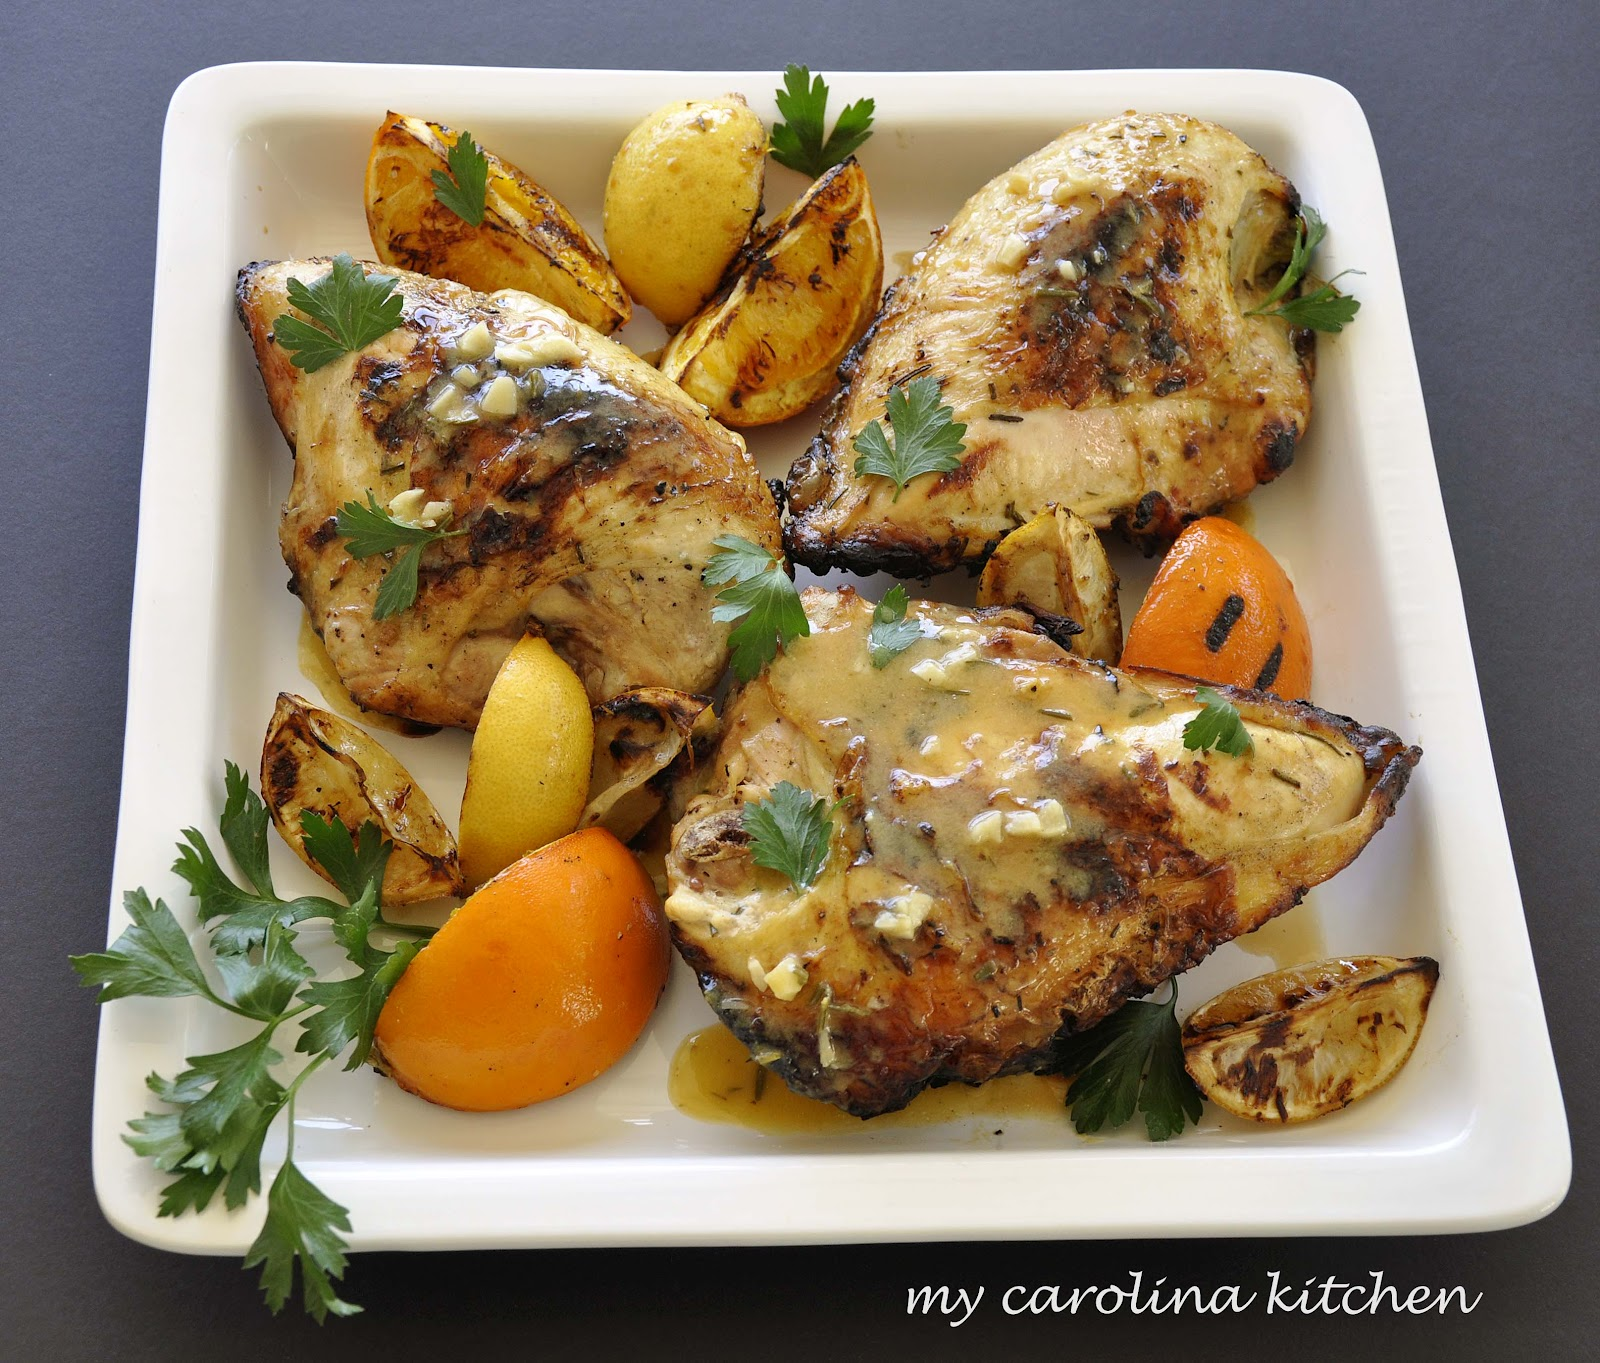 My Carolina Kitchen: Grilled Citrus Chicken Breasts Recipe